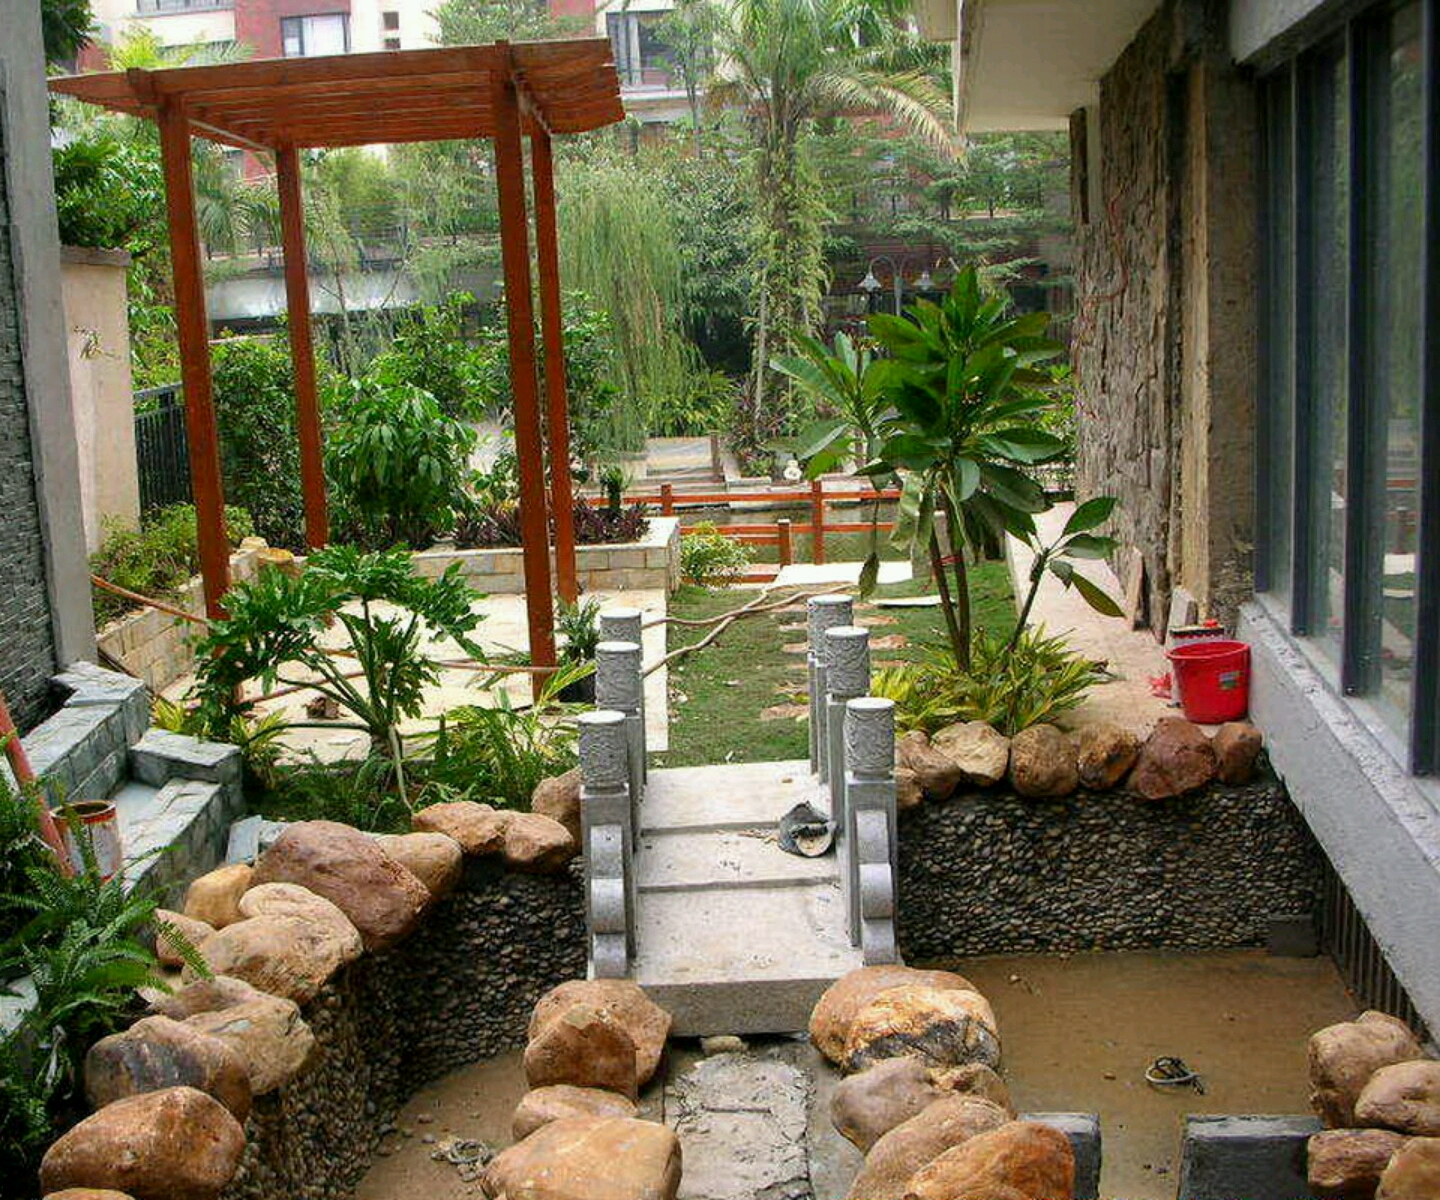 Home decor 2012 beautiful home gardens designs ideas for Home garden decoration ideas